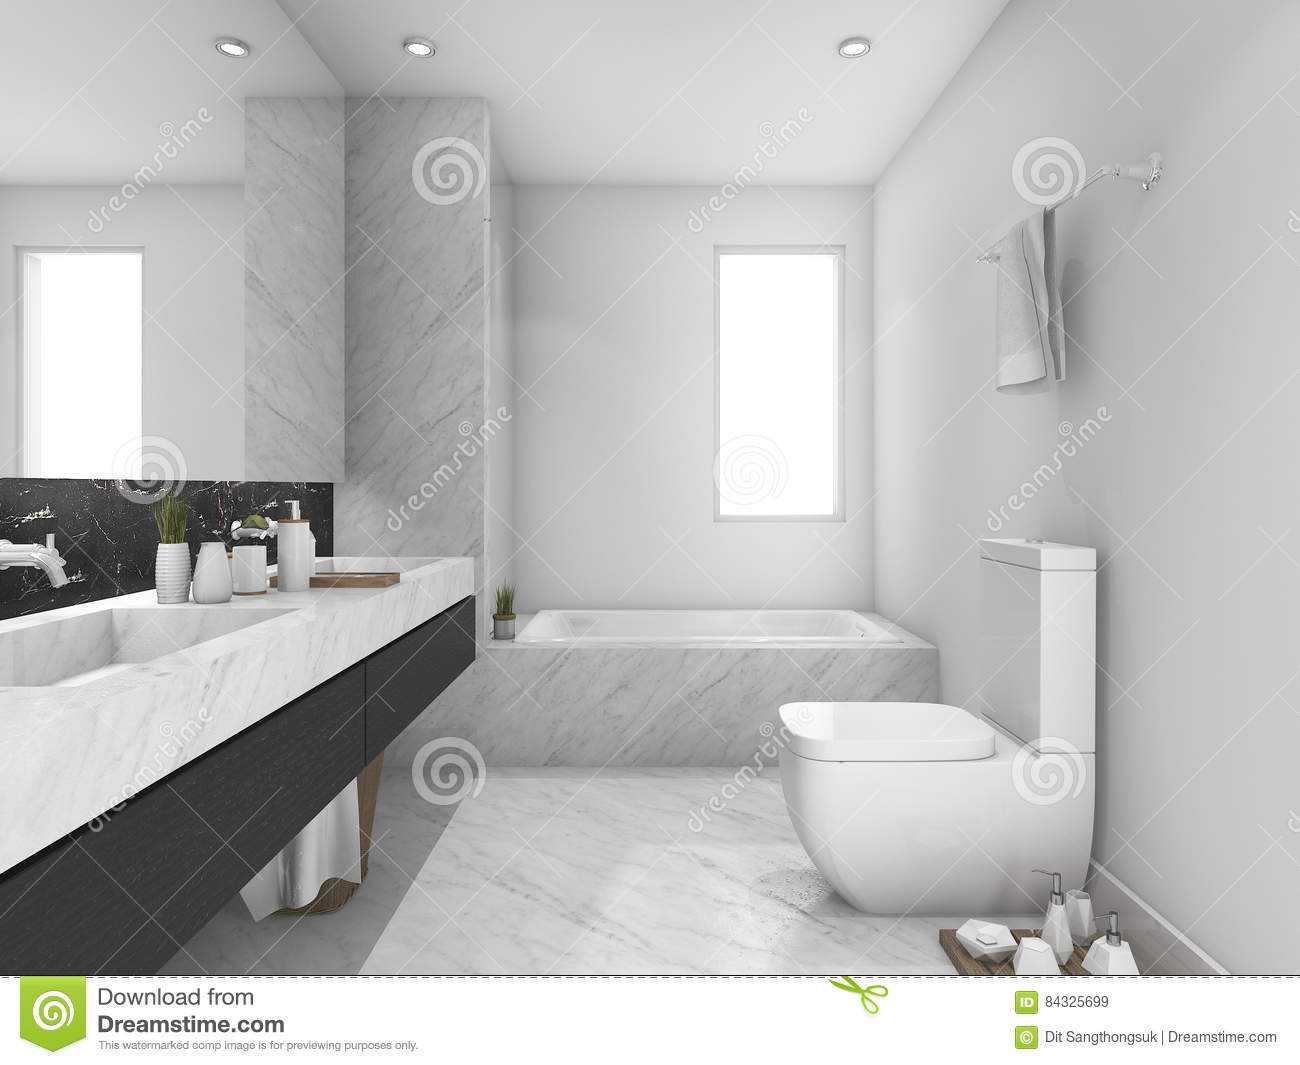 3d Rendering White And Black Marble Toilet And Bathroom Stock ...